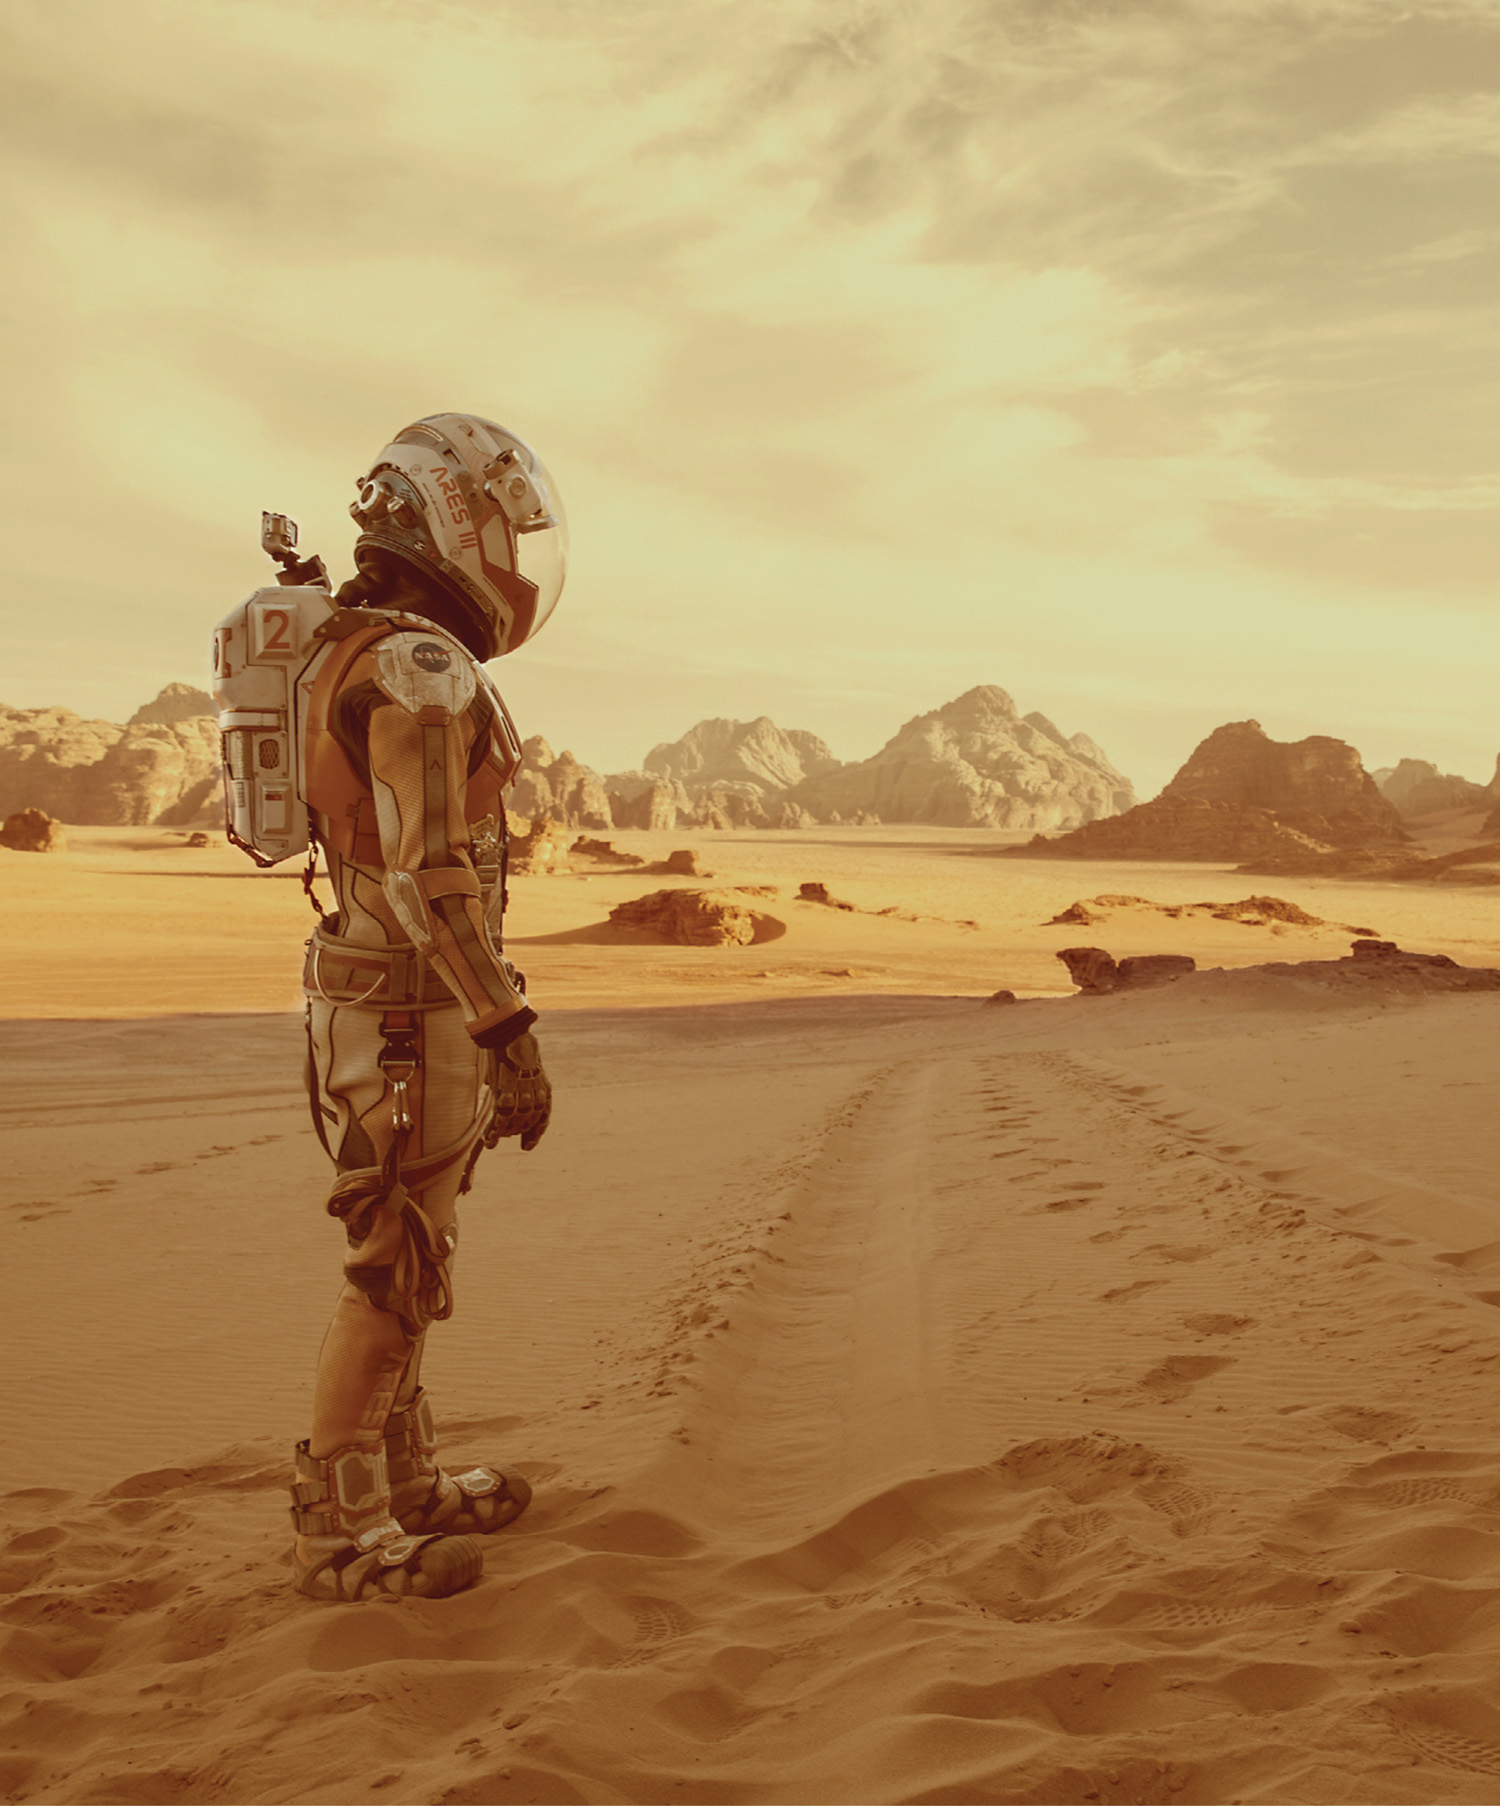 A film still from the movie The Martian featuring an image of an astronaut on Mars